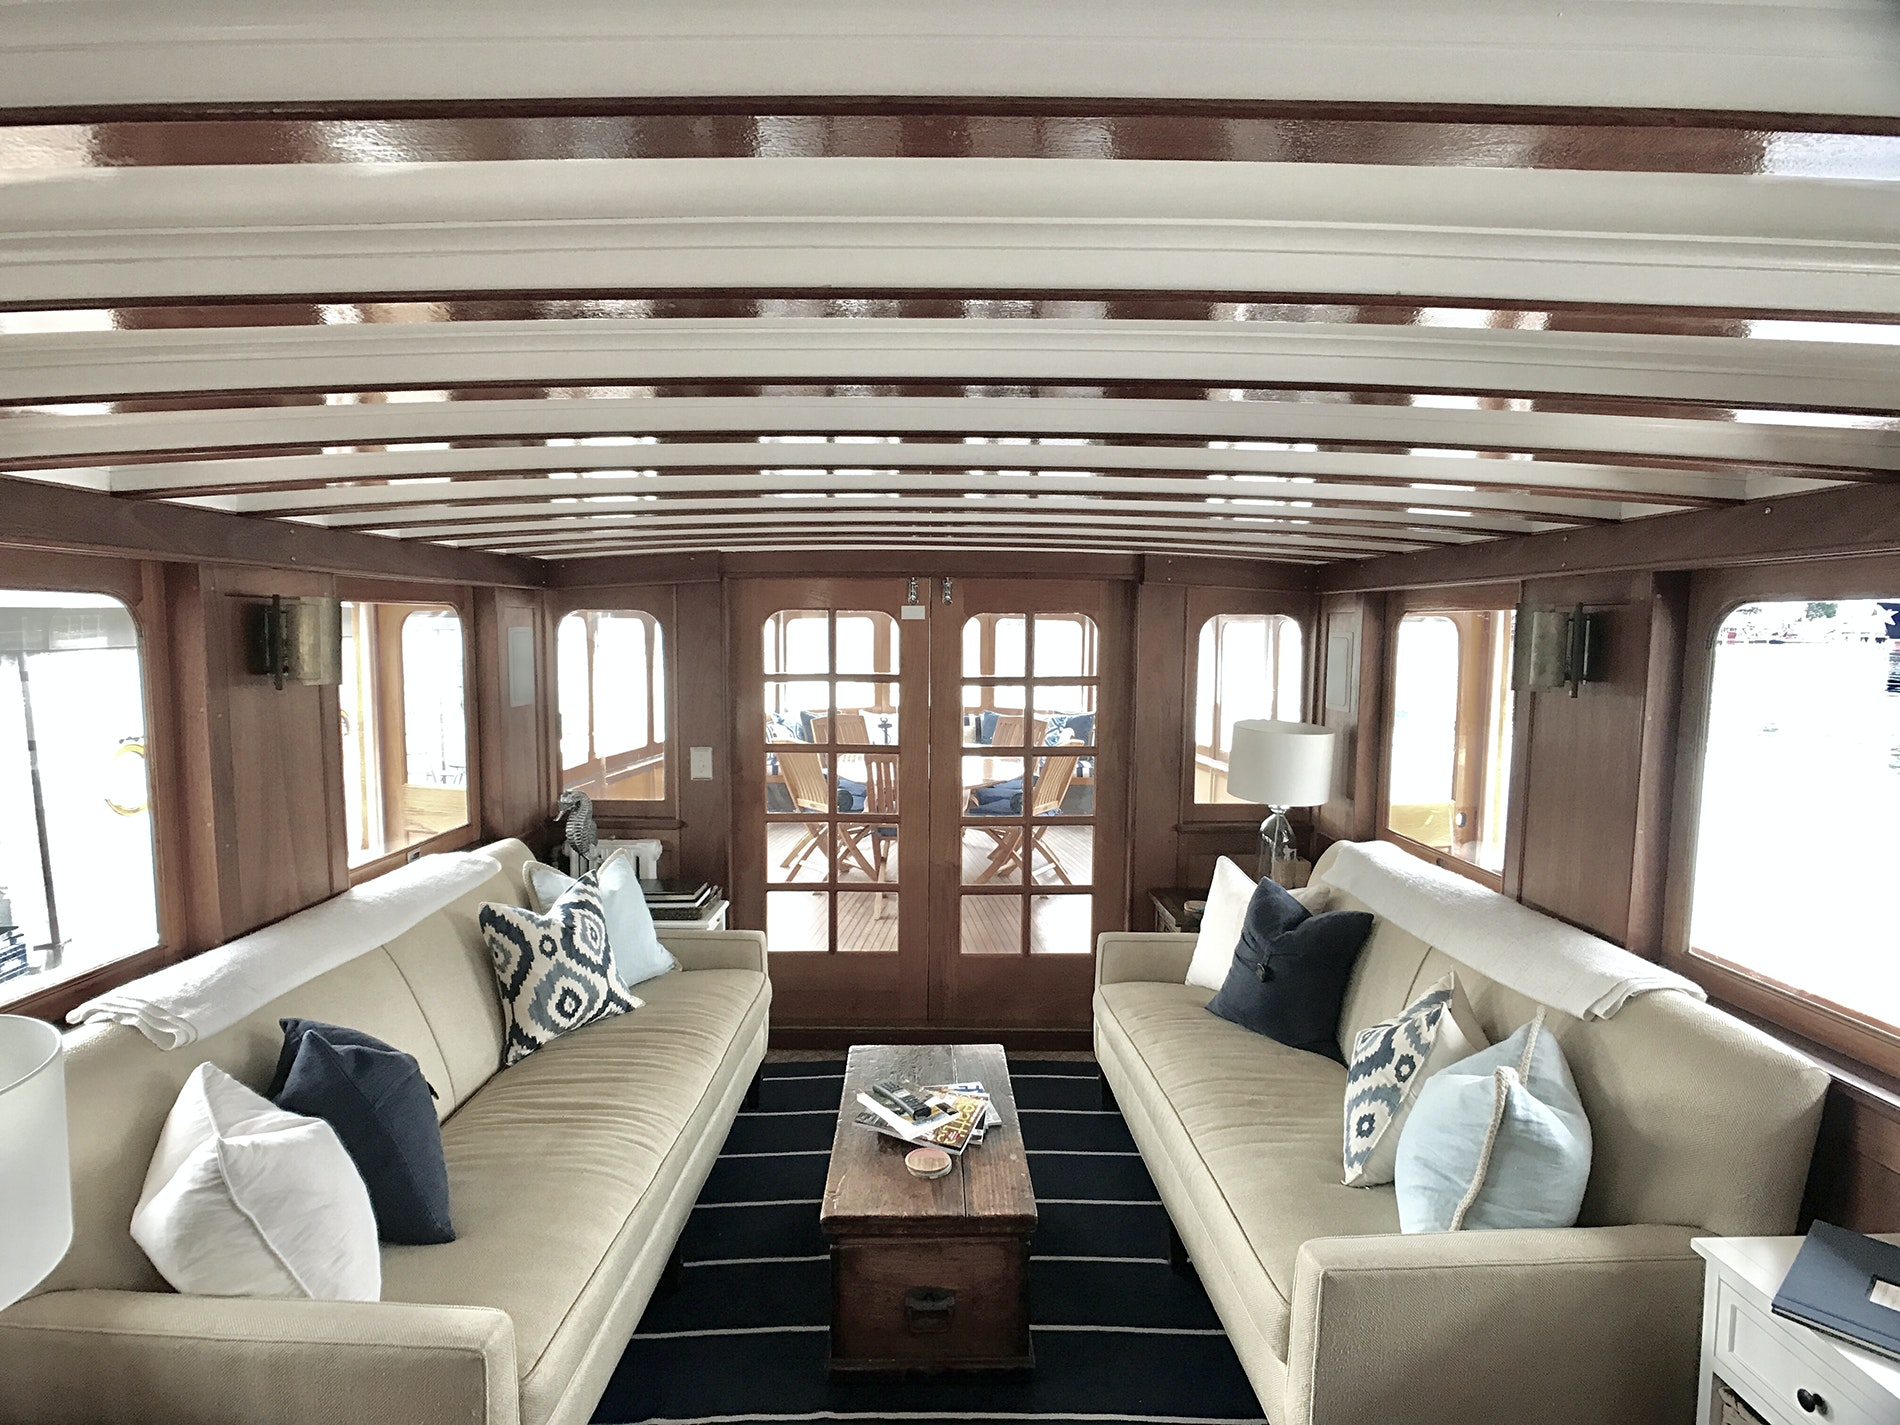 This 78-foot-long, 80-year-old yacht has been restored to a luxury standard as a floating hotel option for Airbnb guests.